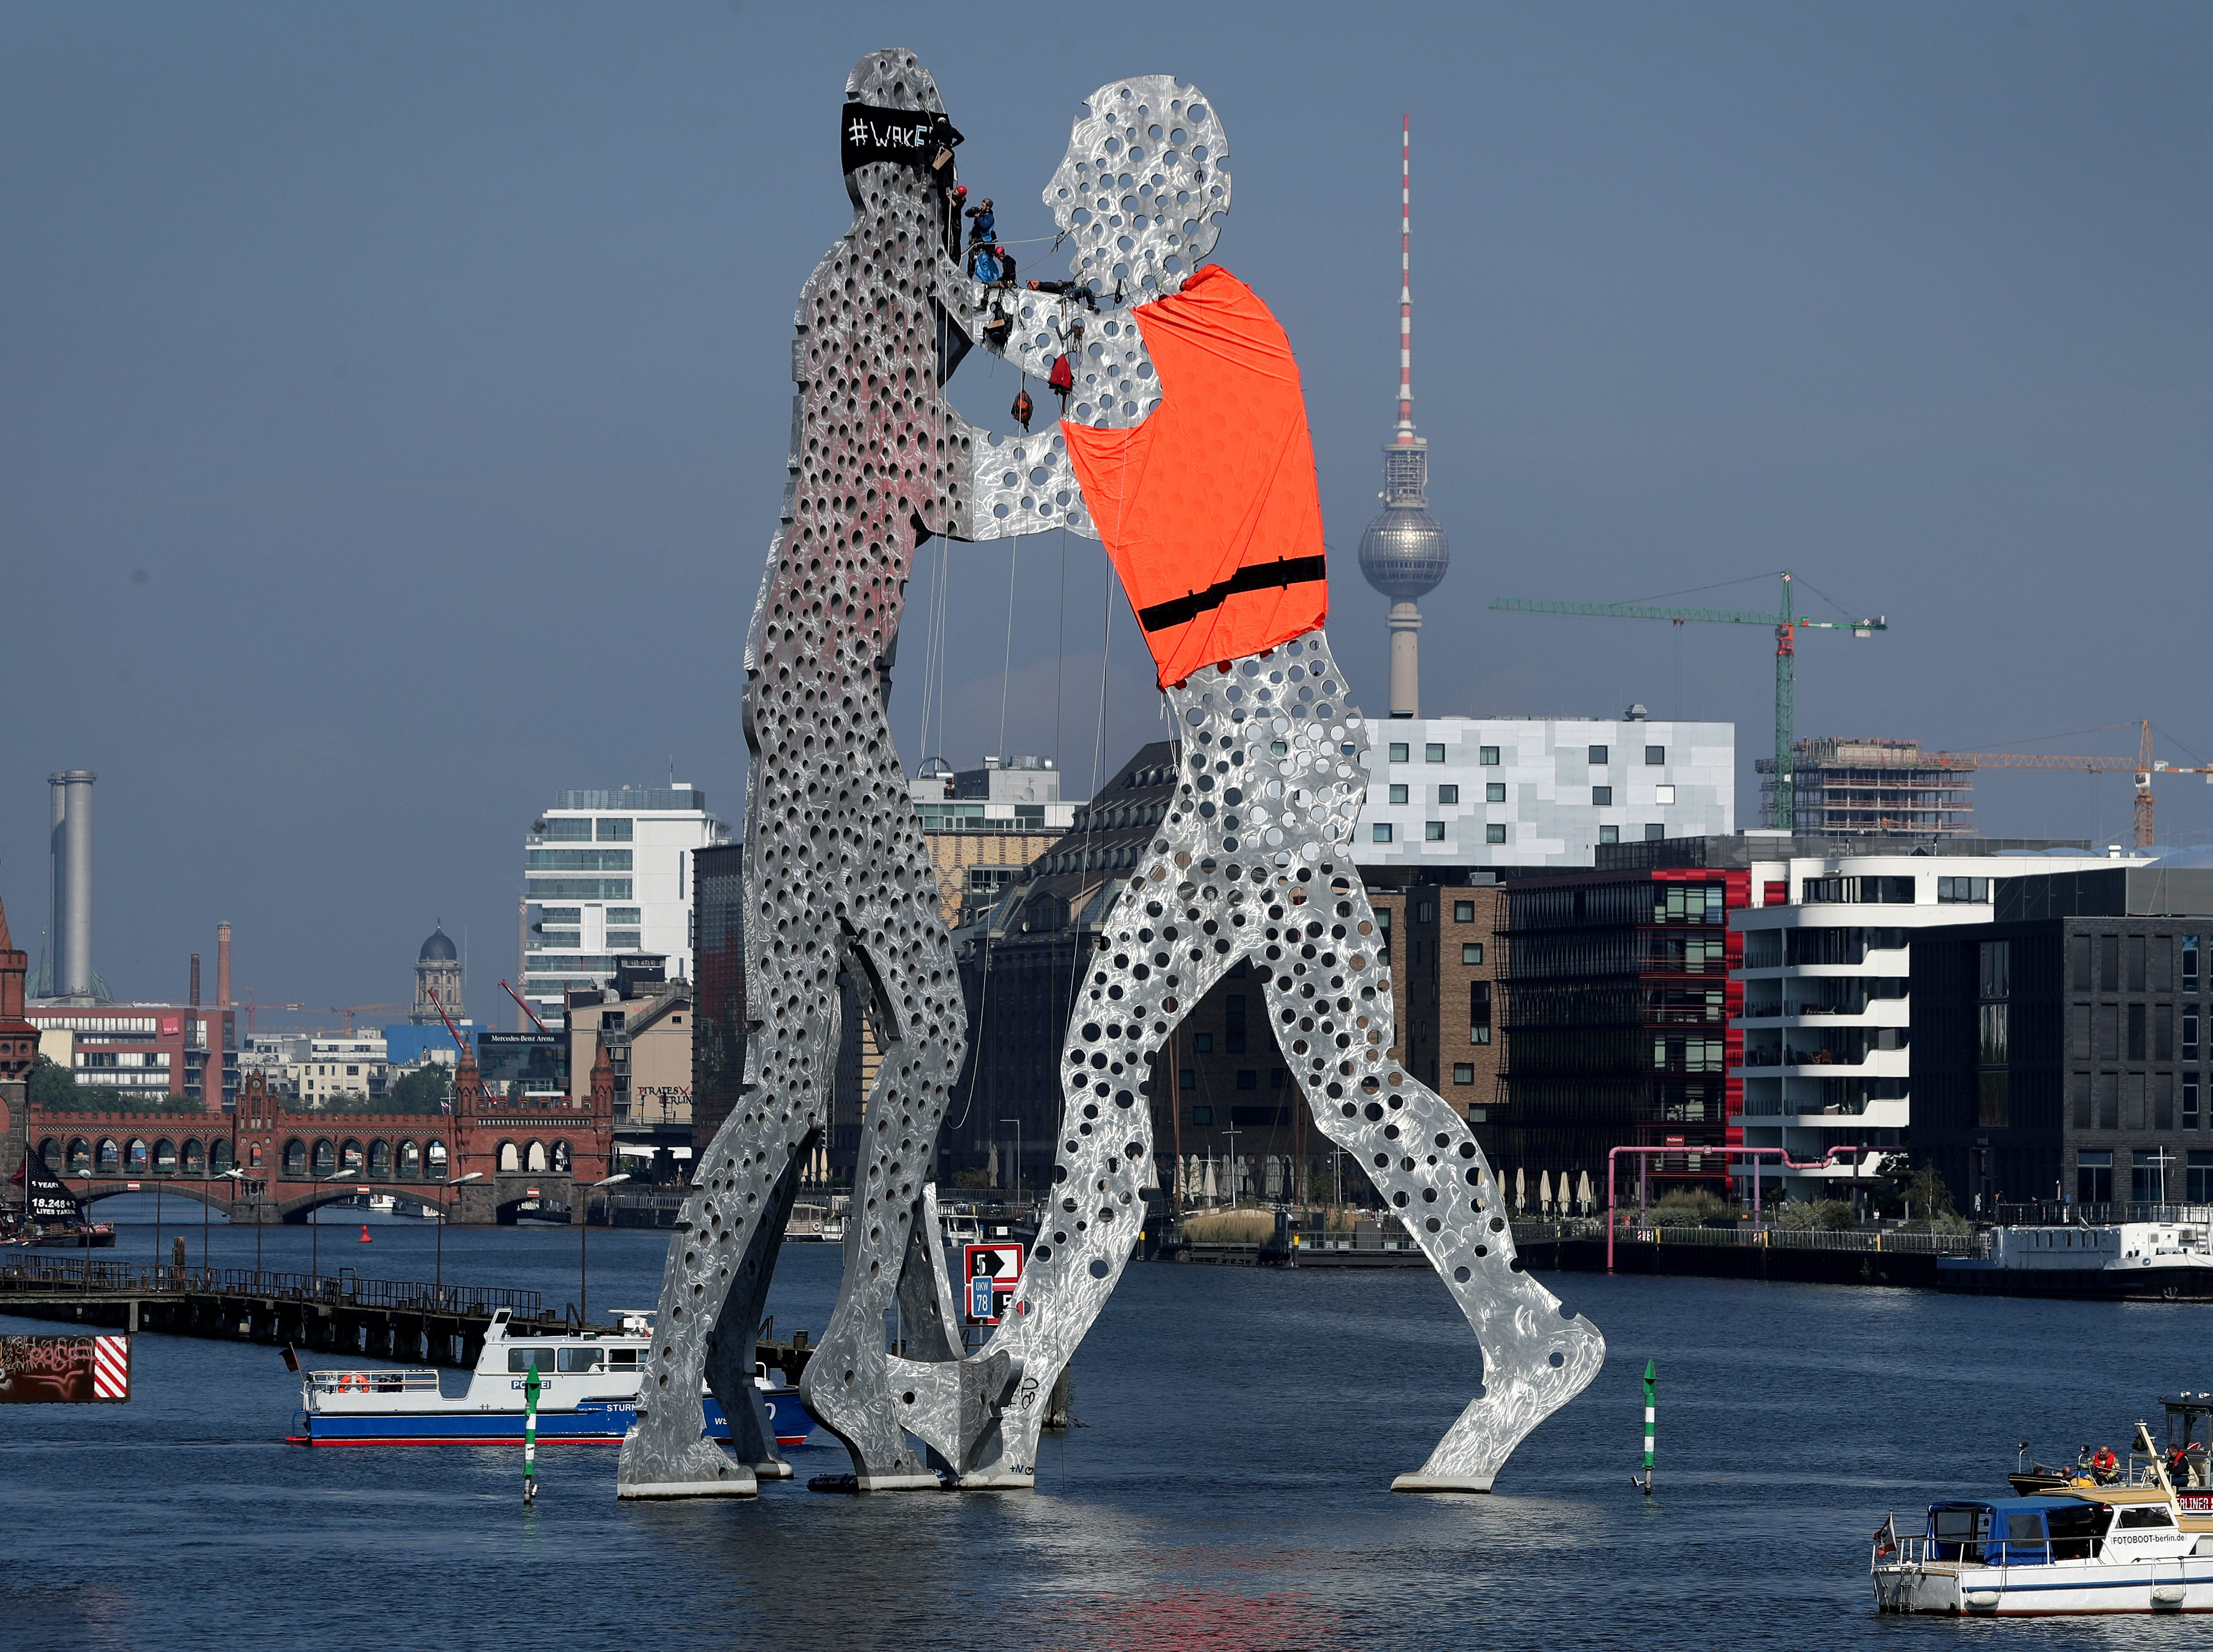 """Activists add a life vest to the capital's iconic """"Molecule Man"""" statue in Berlin, Germany, Friday, May 17, 2019. Protesters climbed the 100-foot tall artwork, which towers out of the Spree river in downtown Berlin, to adorn the statue with an orange vest and to raise the awareness to the perilous plight of migrants attempting to cross the Mediterranean into Europe."""